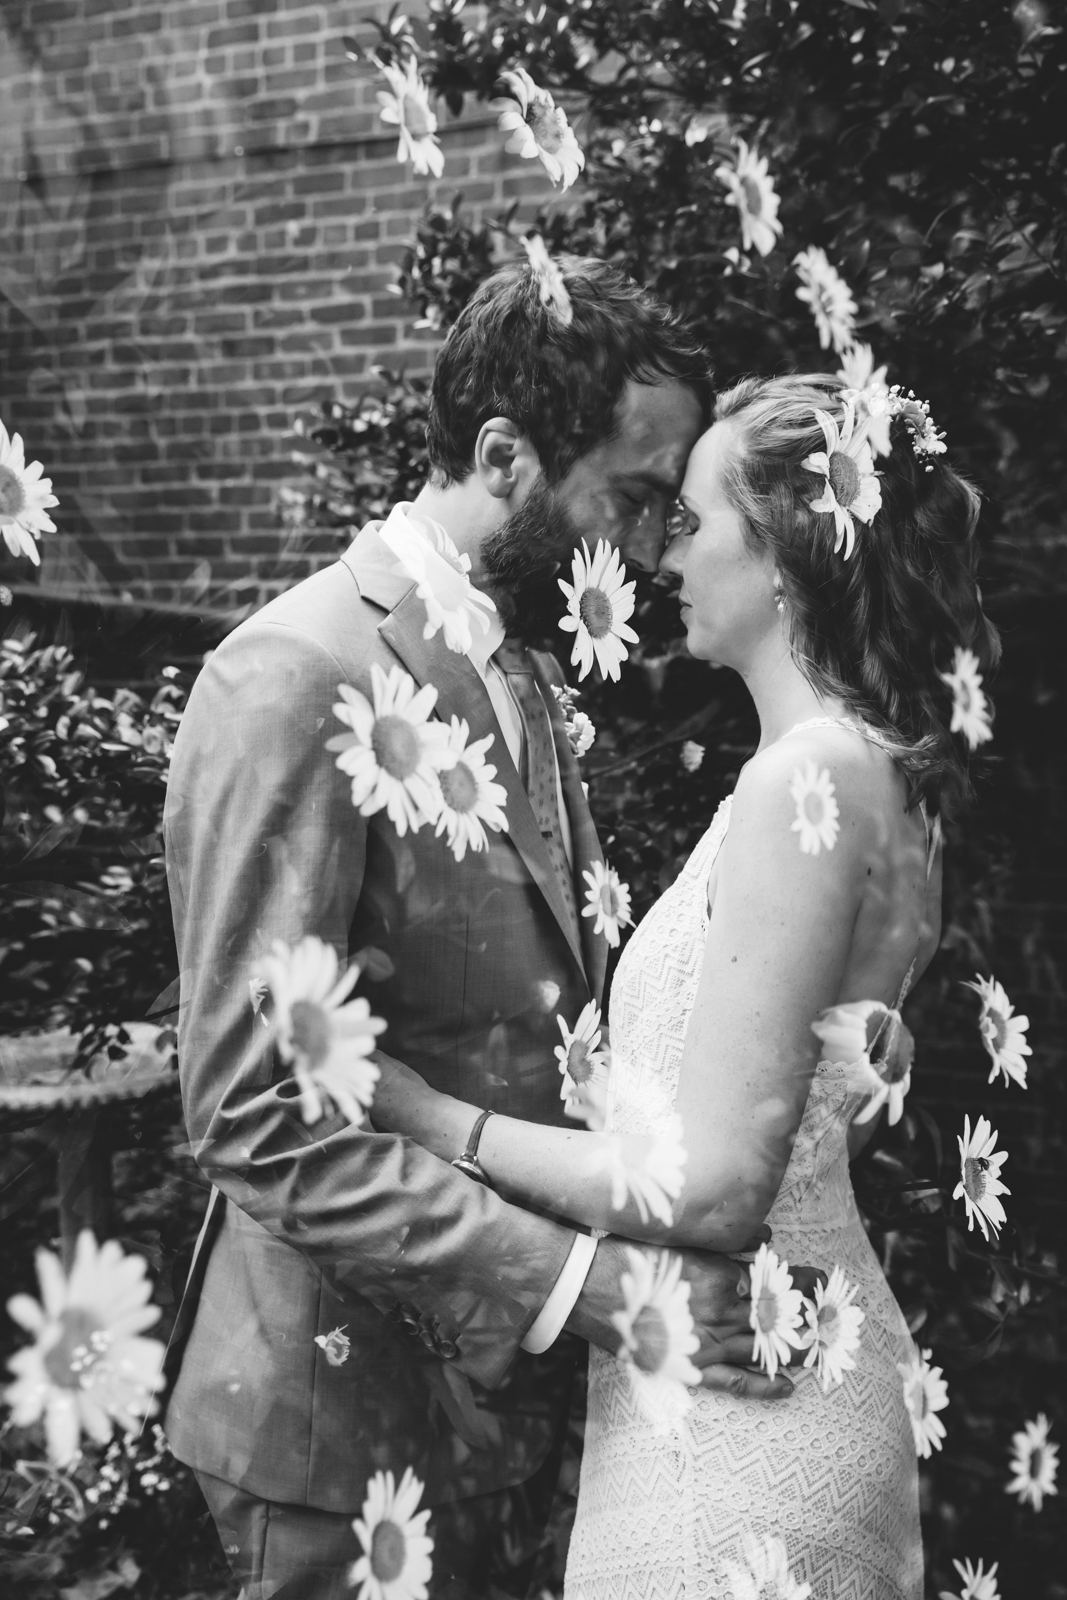 richmondvaweddingphotography-poemuseum-87.jpg